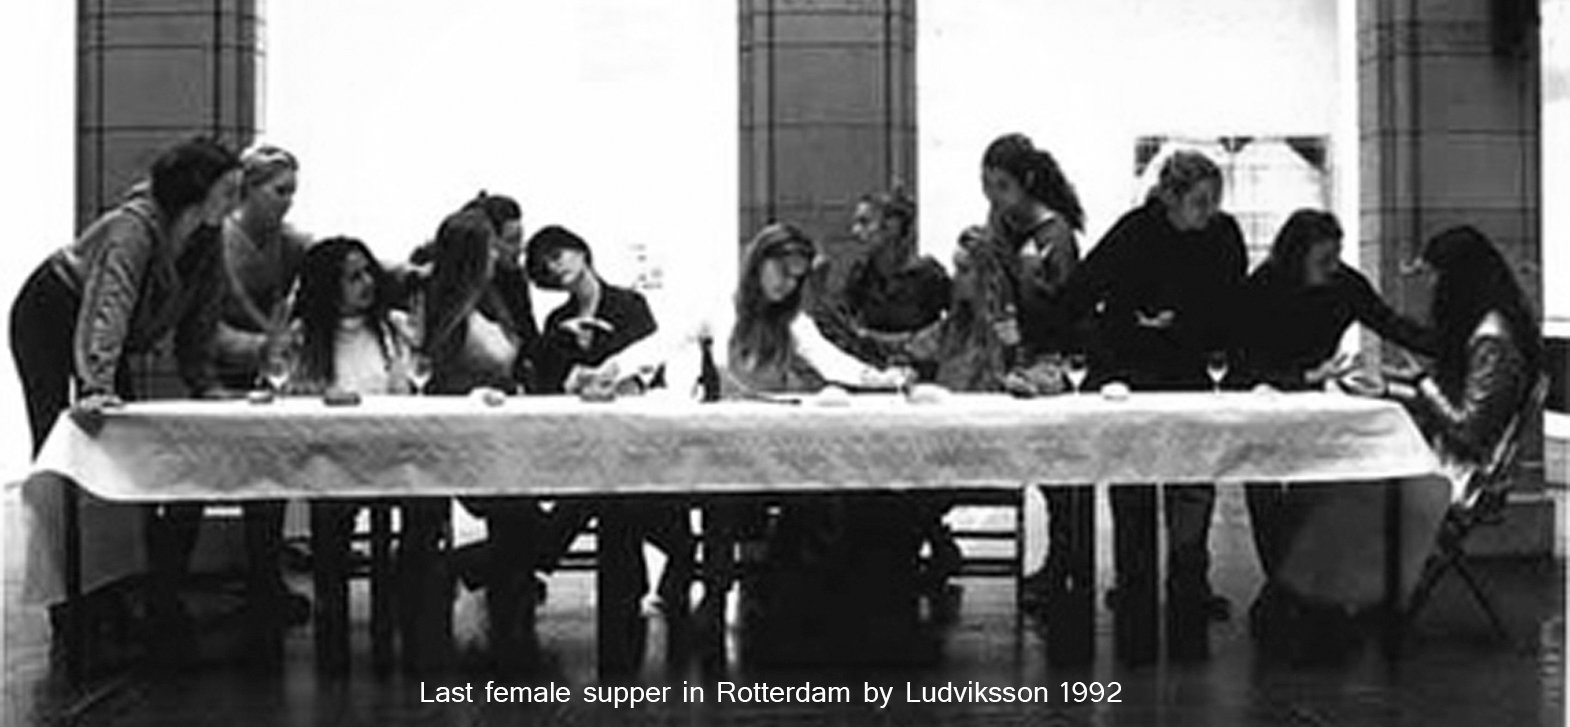 Performance Last Female Supper Rotterdam